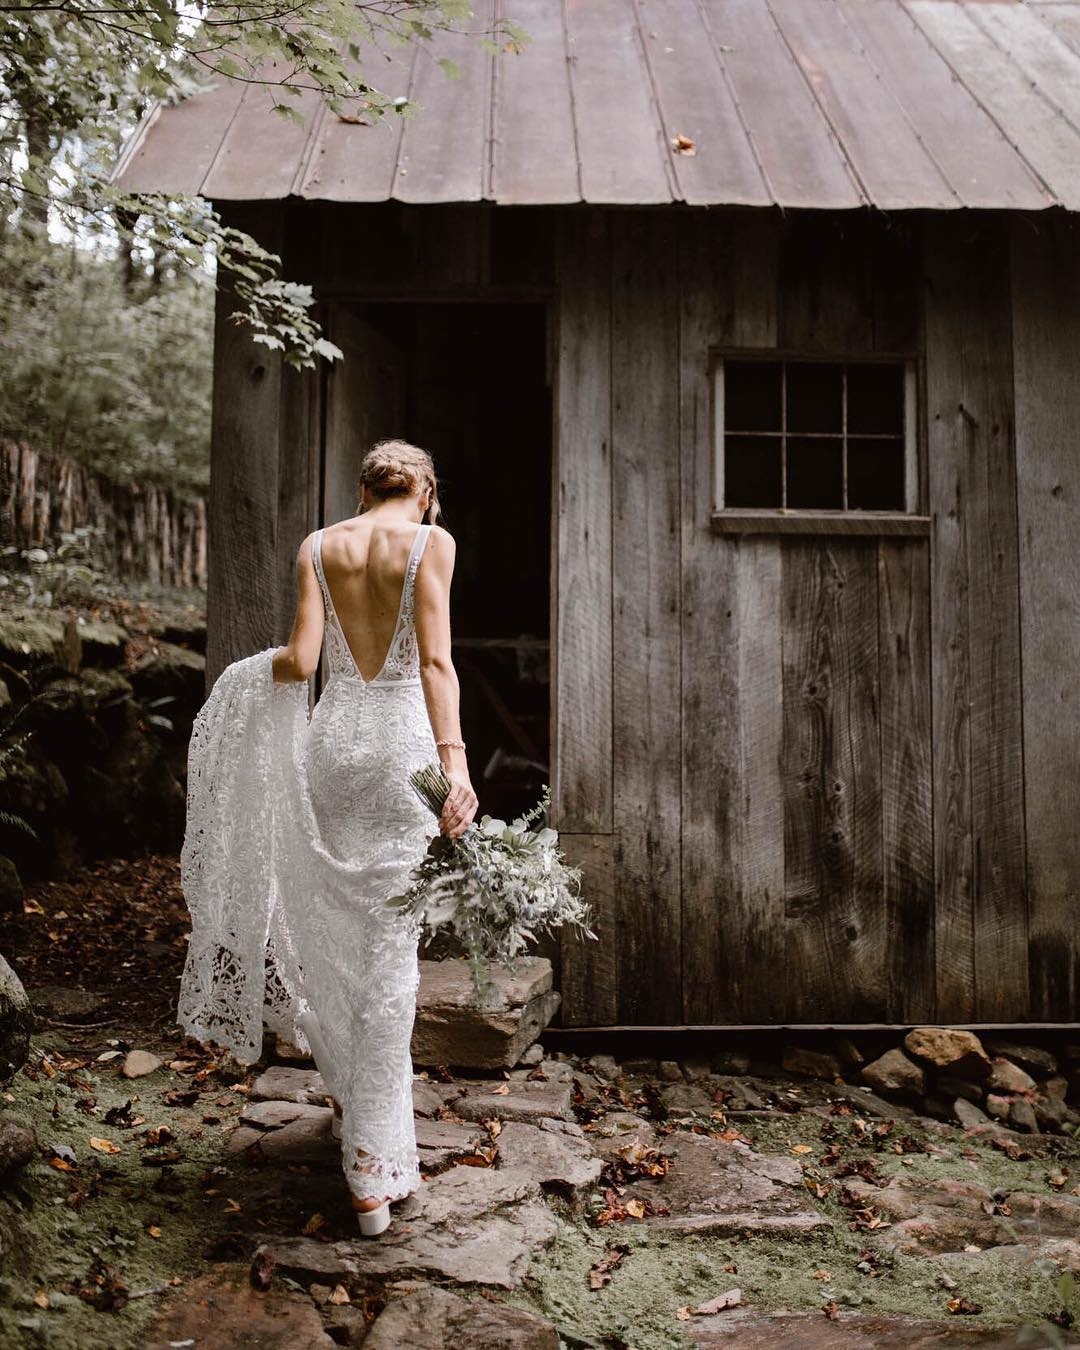 A bride holding the train of her dress from one hand and the bouquet from the other walks into a hut